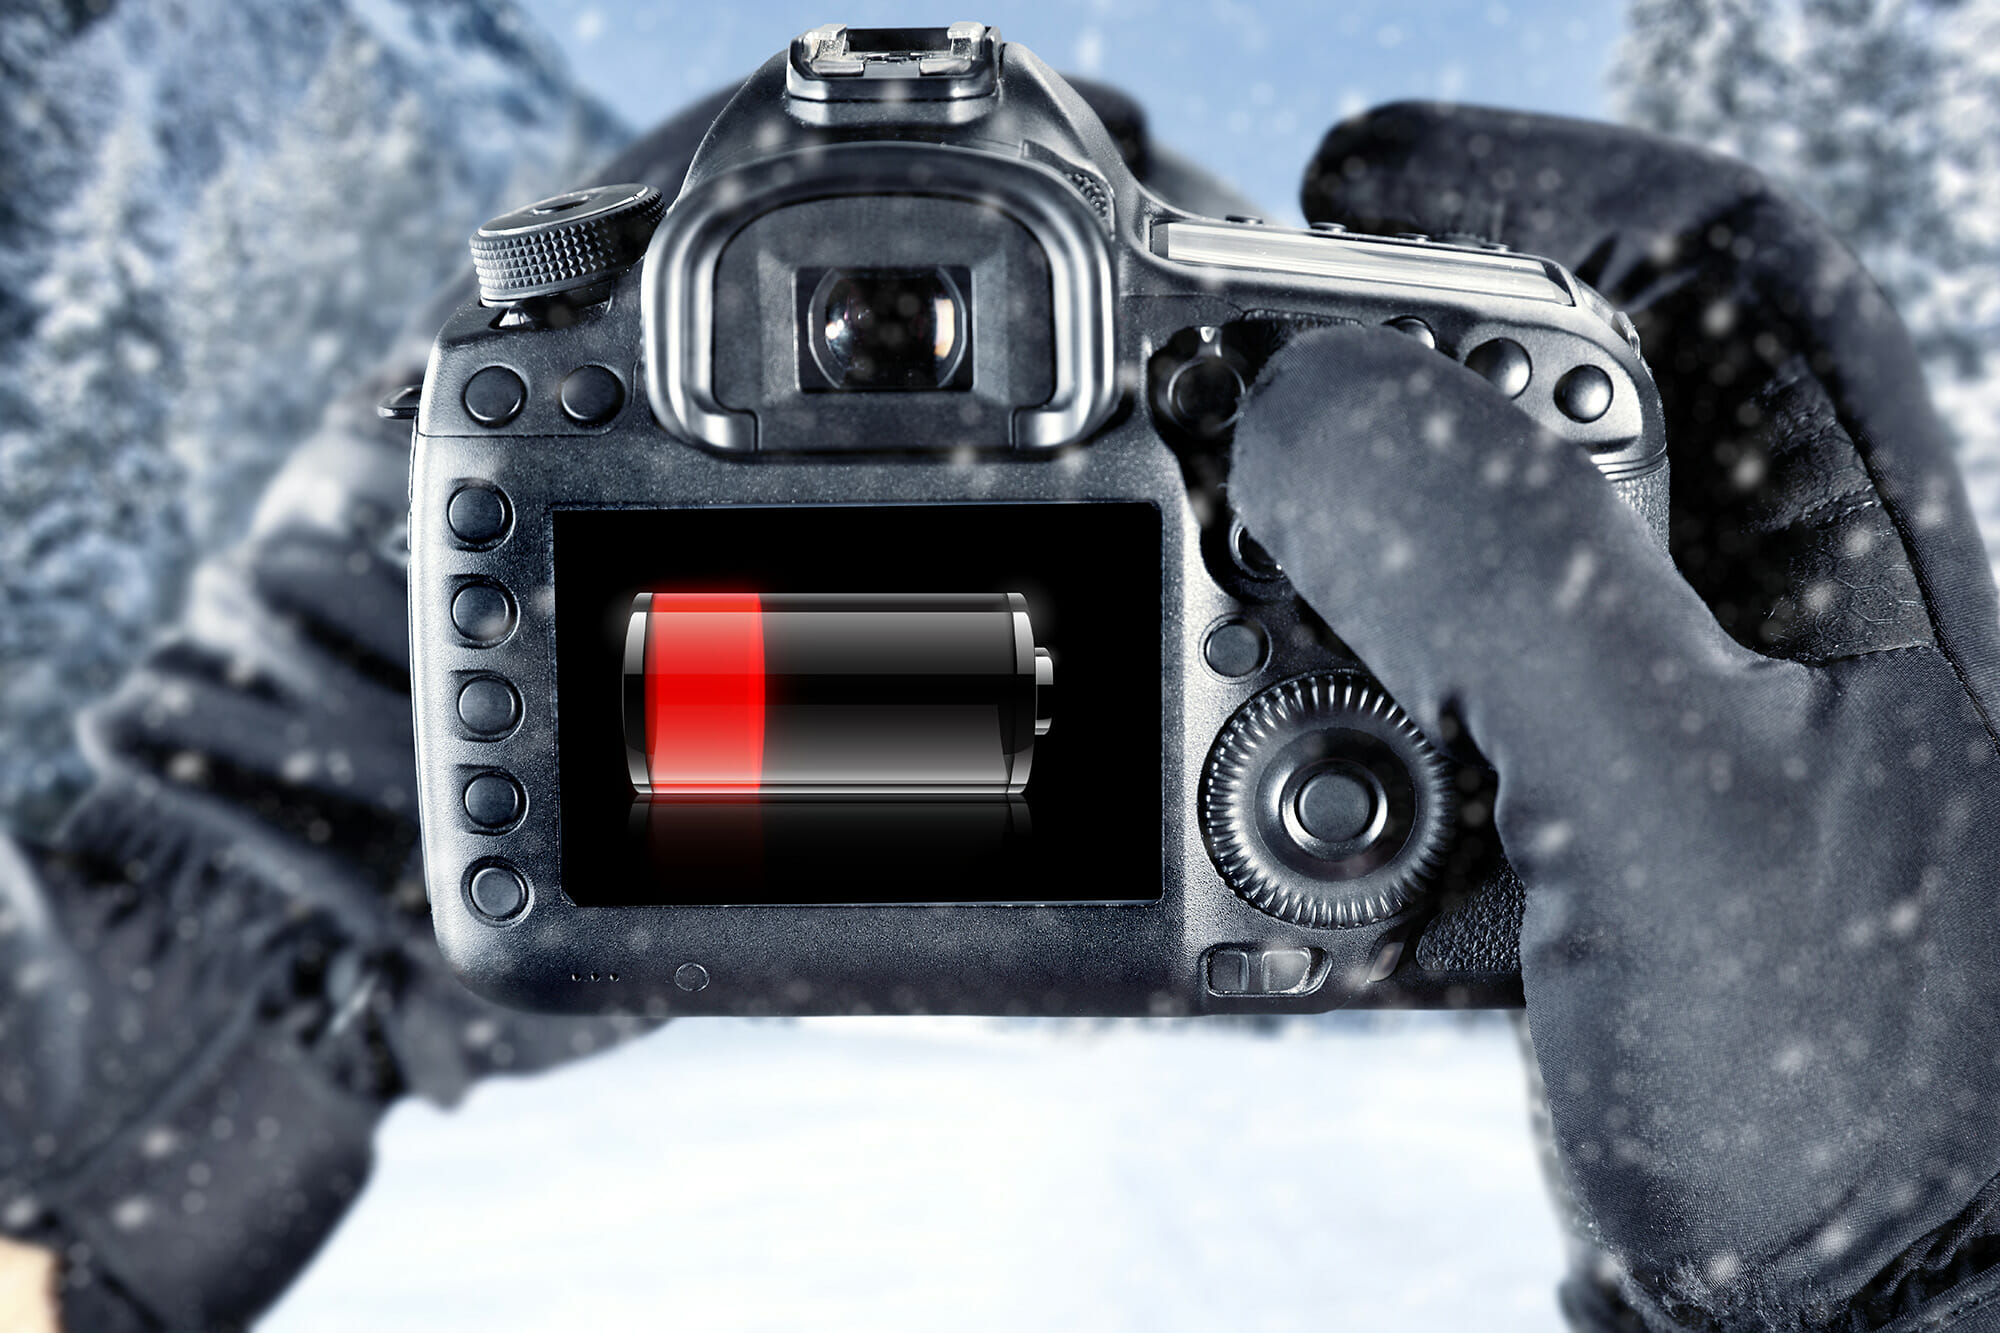 camera battery low drain cold weather snow winter